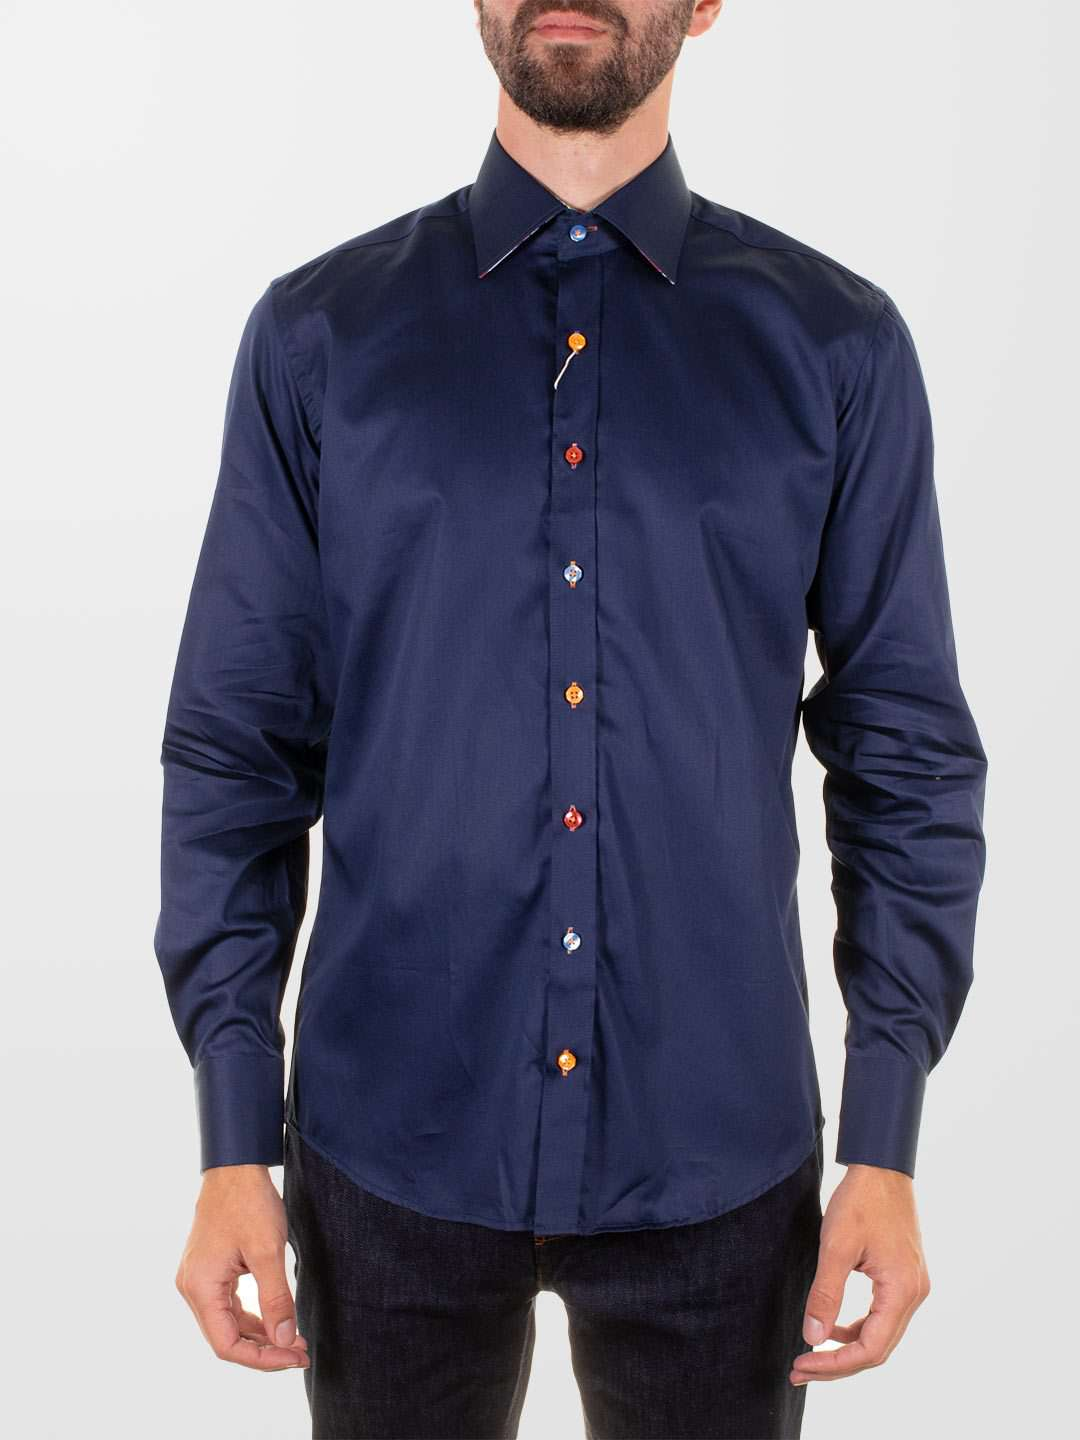 CLAUDIO LUGLI Splash Floral Trim Shirt